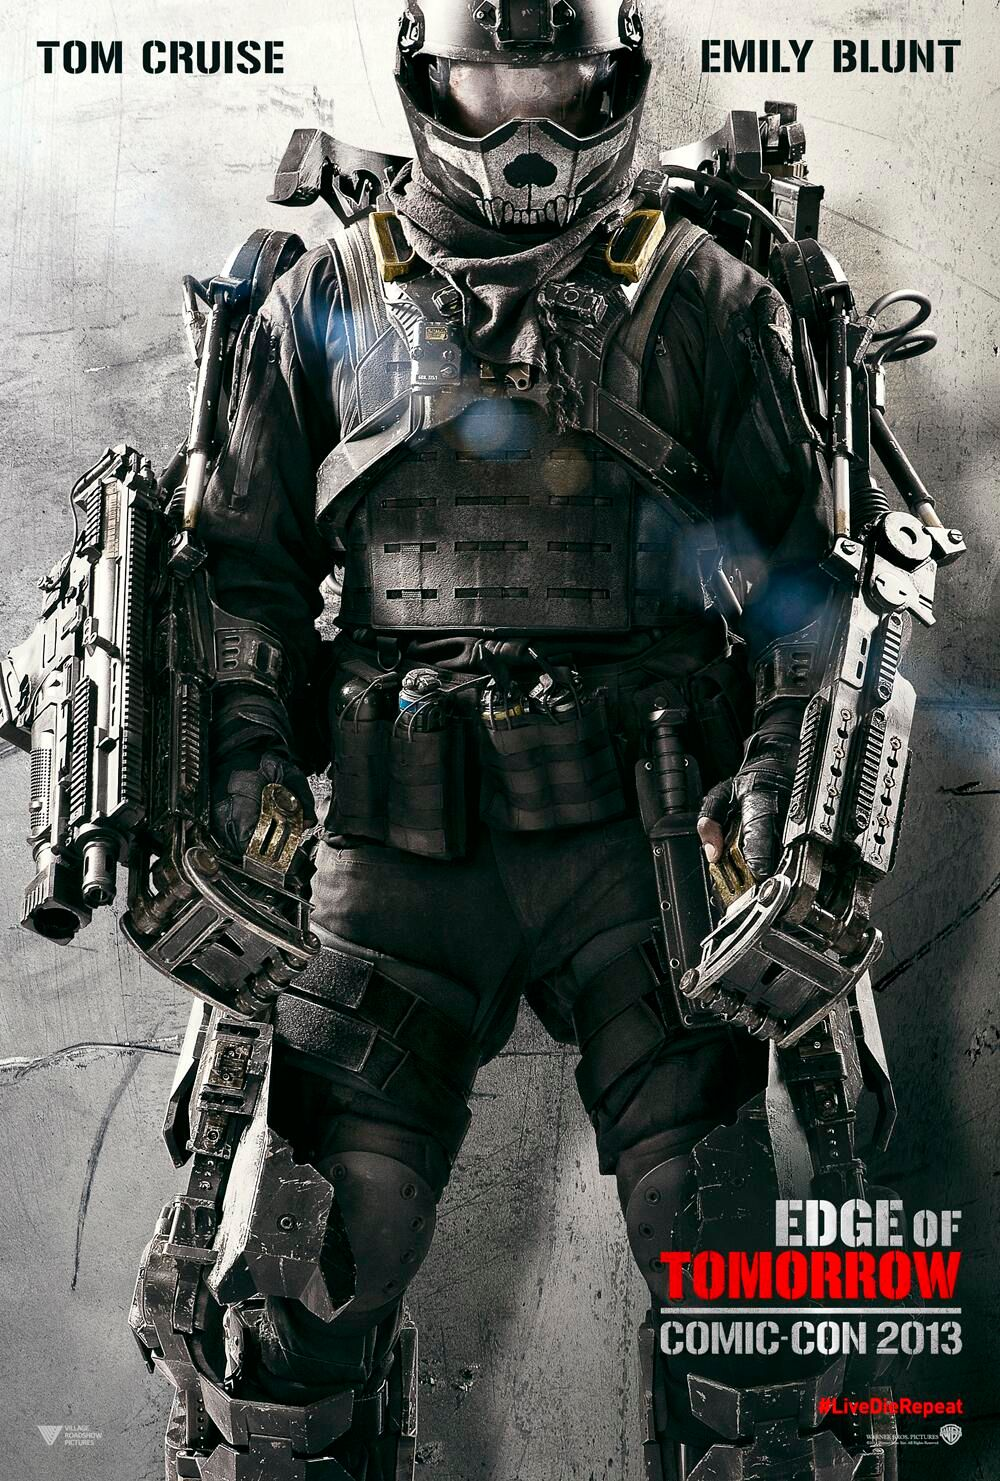 Tomorrow With A Smile Knock Off: EDGE OF TOMORROW And THE WORLD'S END Comic-Con Posters